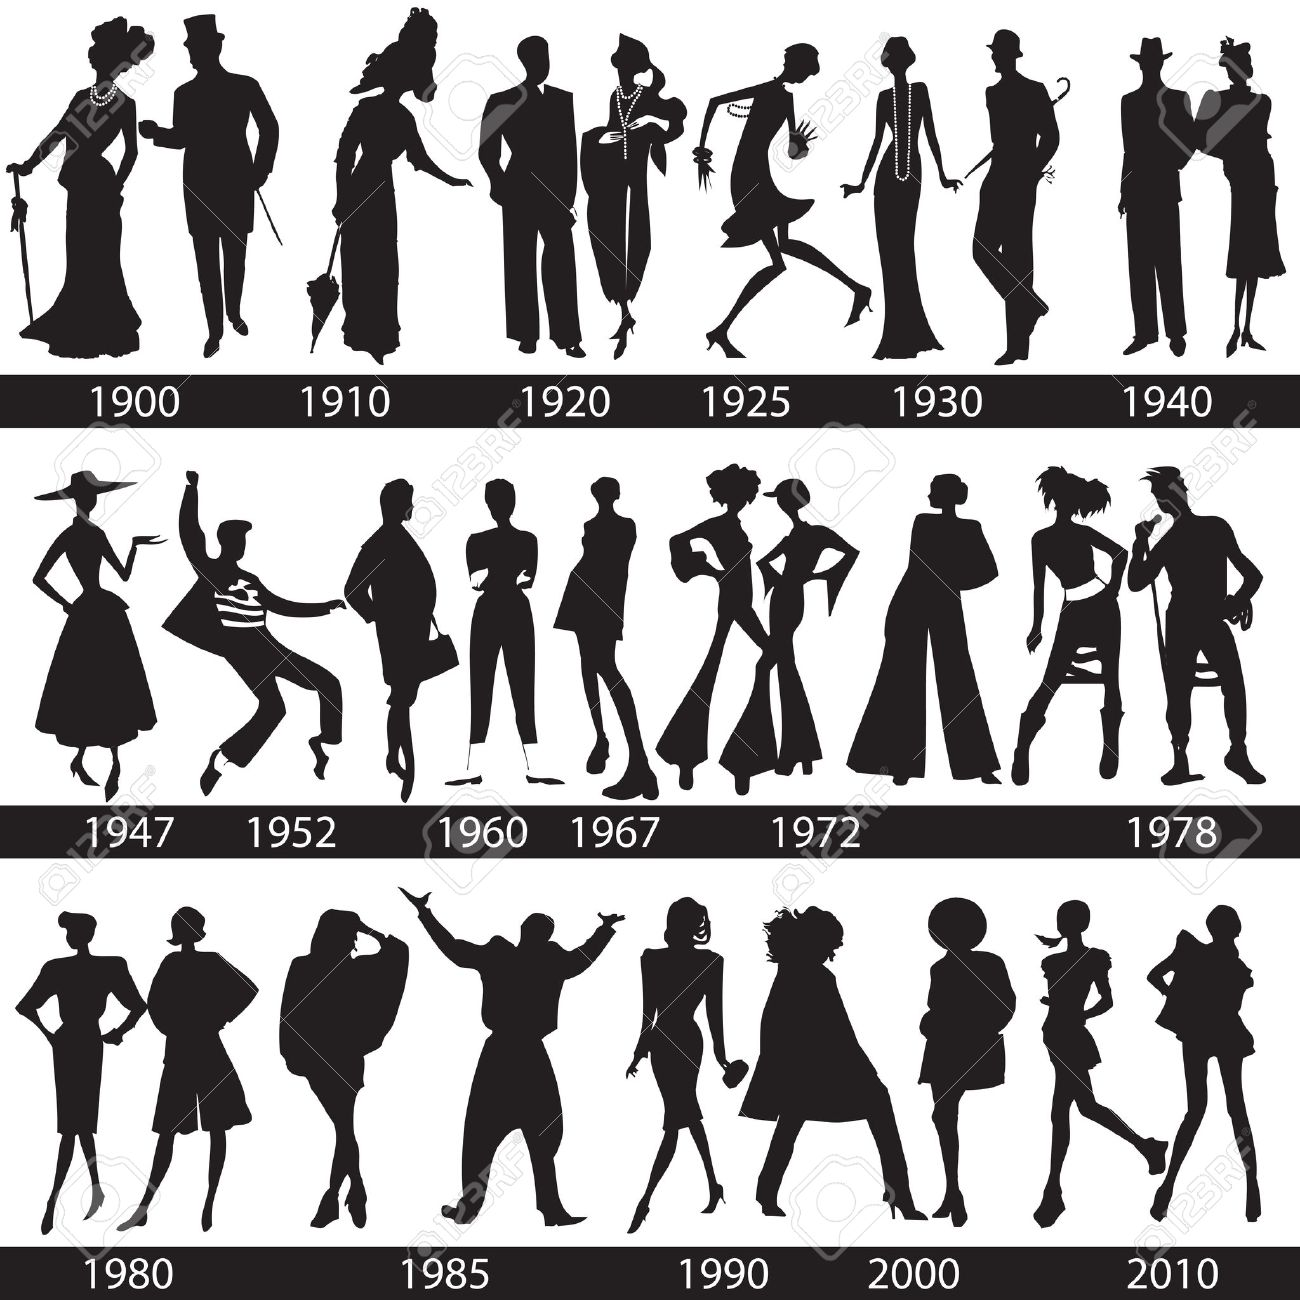 Fashion history, man and woman silhouettes - 14192033